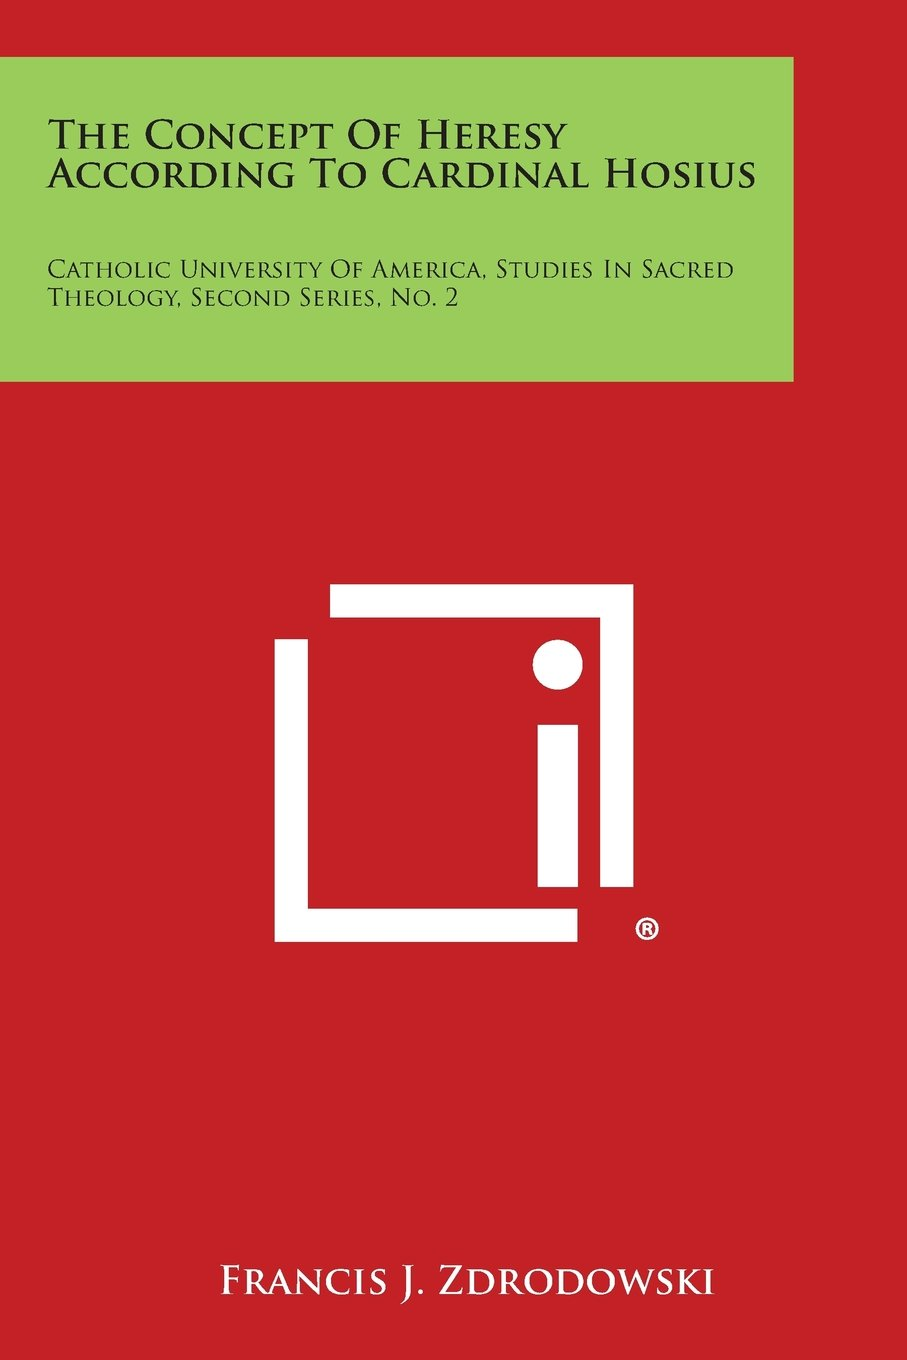 Read Online The Concept of Heresy According to Cardinal Hosius: Catholic University of America, Studies in Sacred Theology, Second Series, No. 2 pdf epub